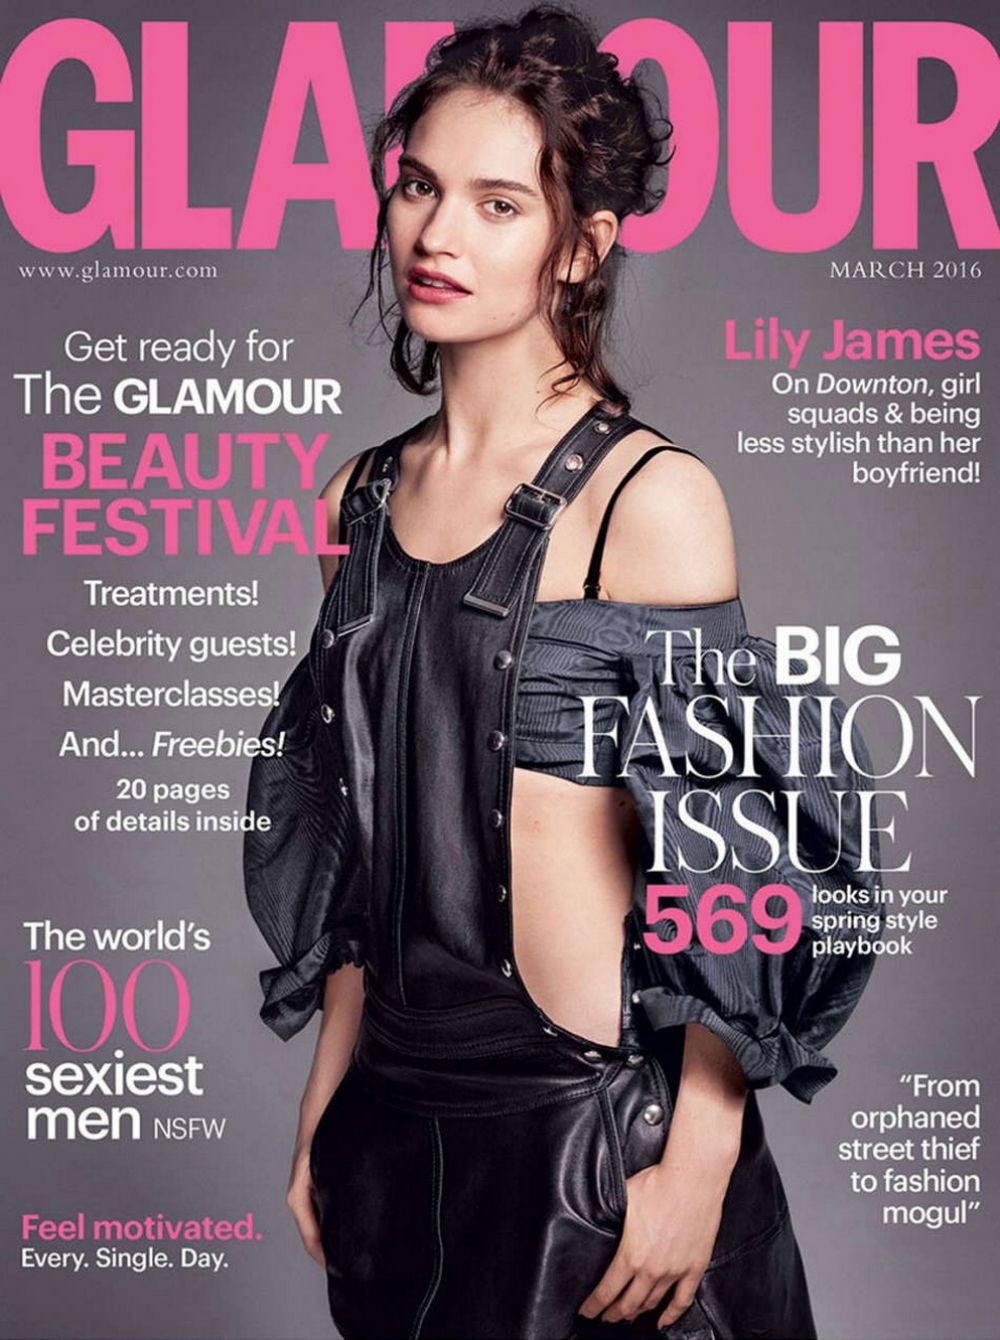 LILY JAMES in Glamour Magazine, March 2016 Issue